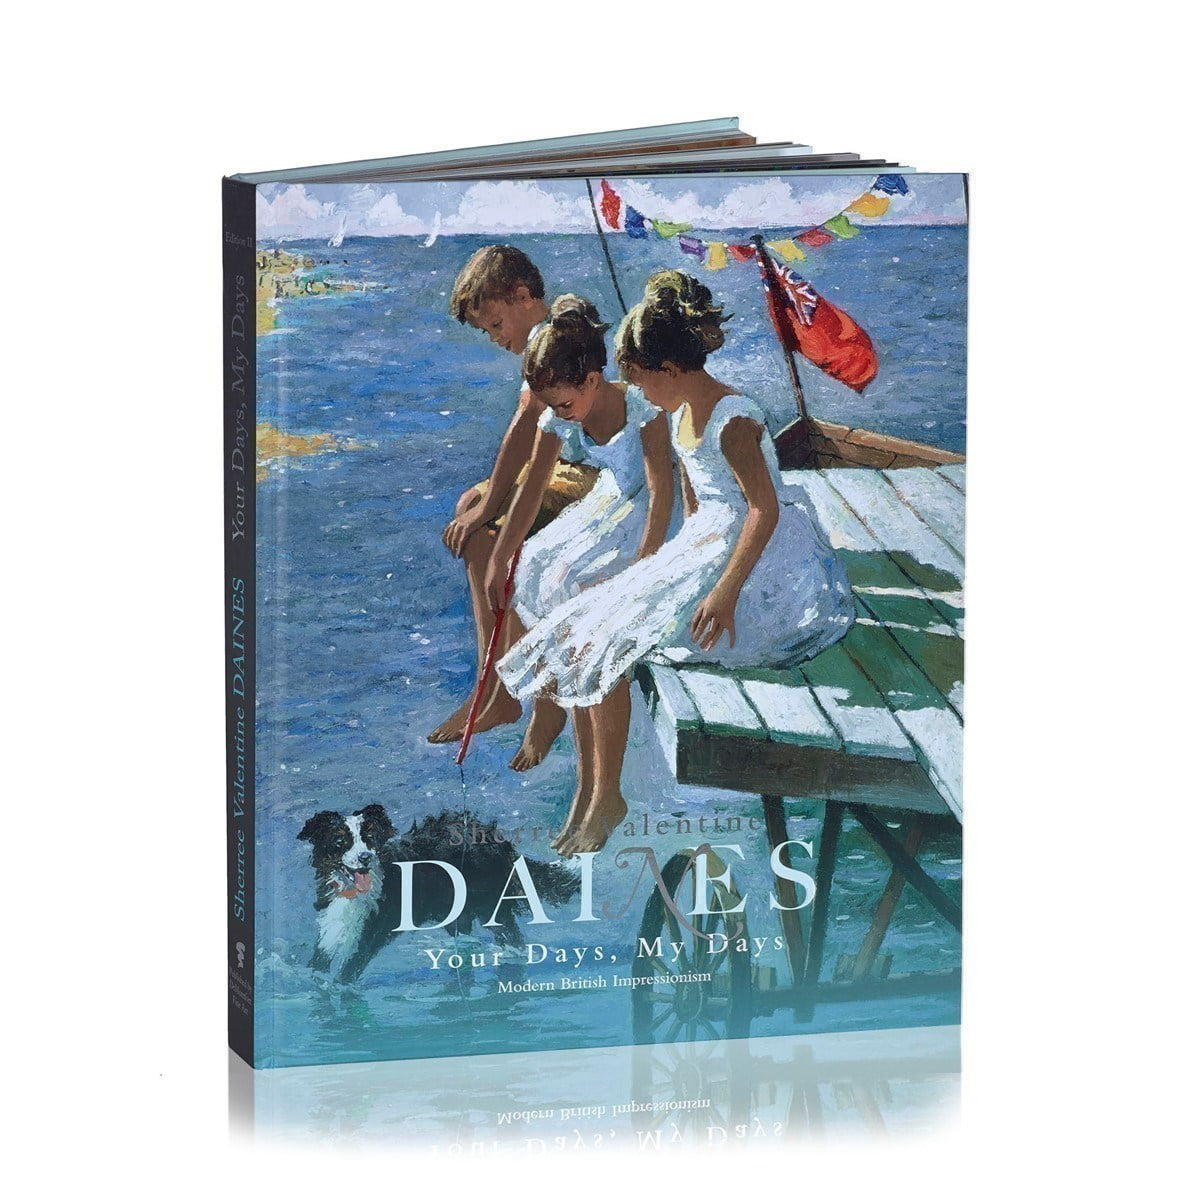 Your Days, My Days (Book) ~ Sherree Valentine Daines